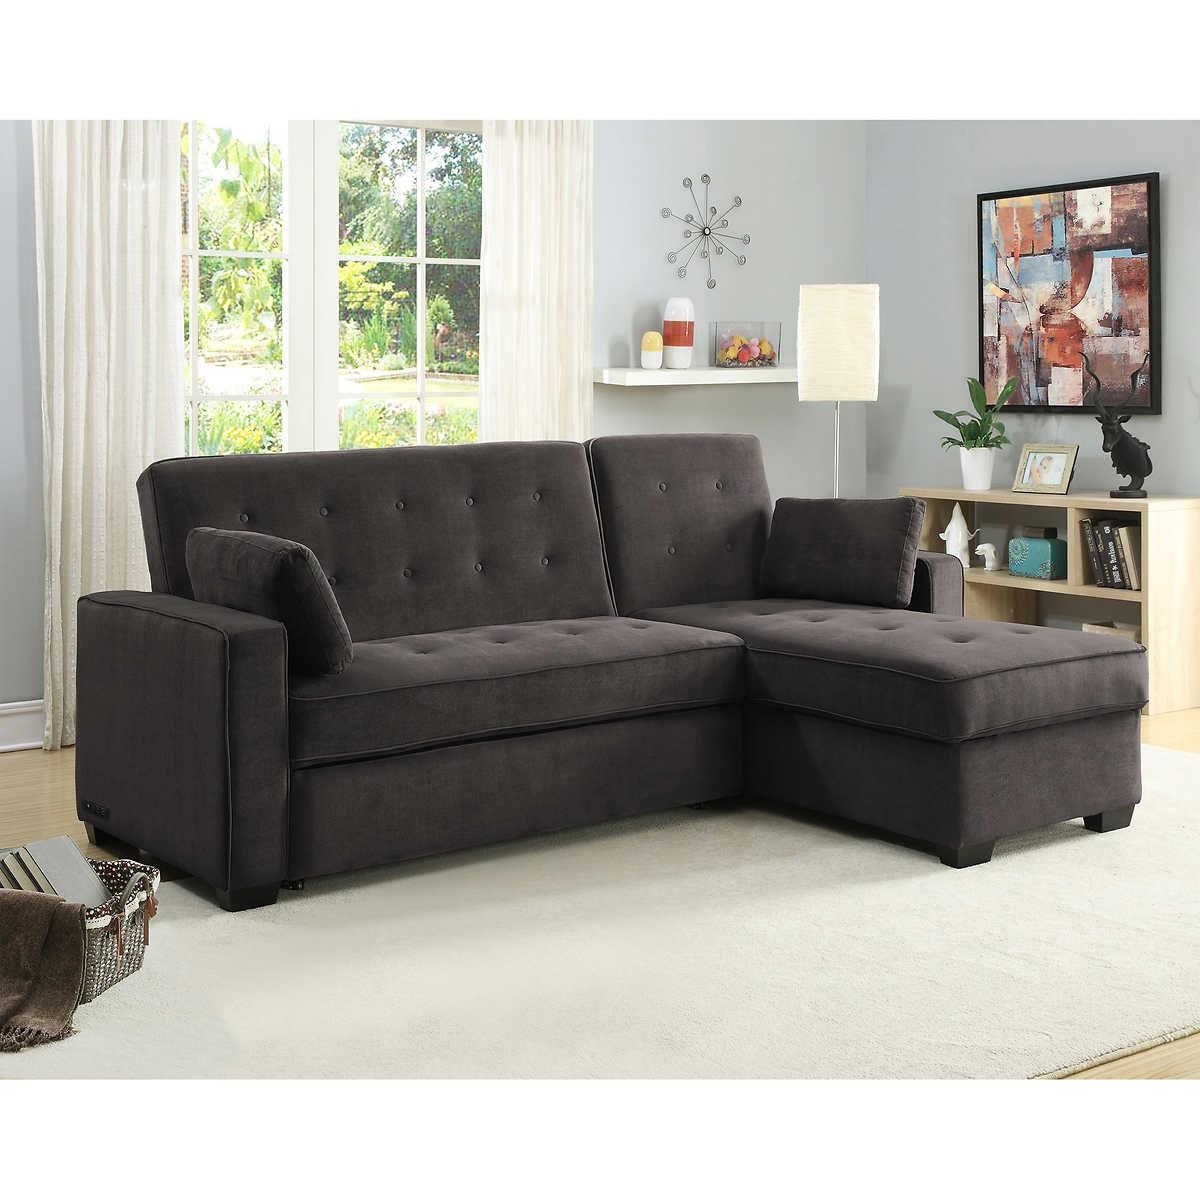 Berkline reclining sofas choosing a reclining sofa brand for Berkline callisburgh sofa chaise